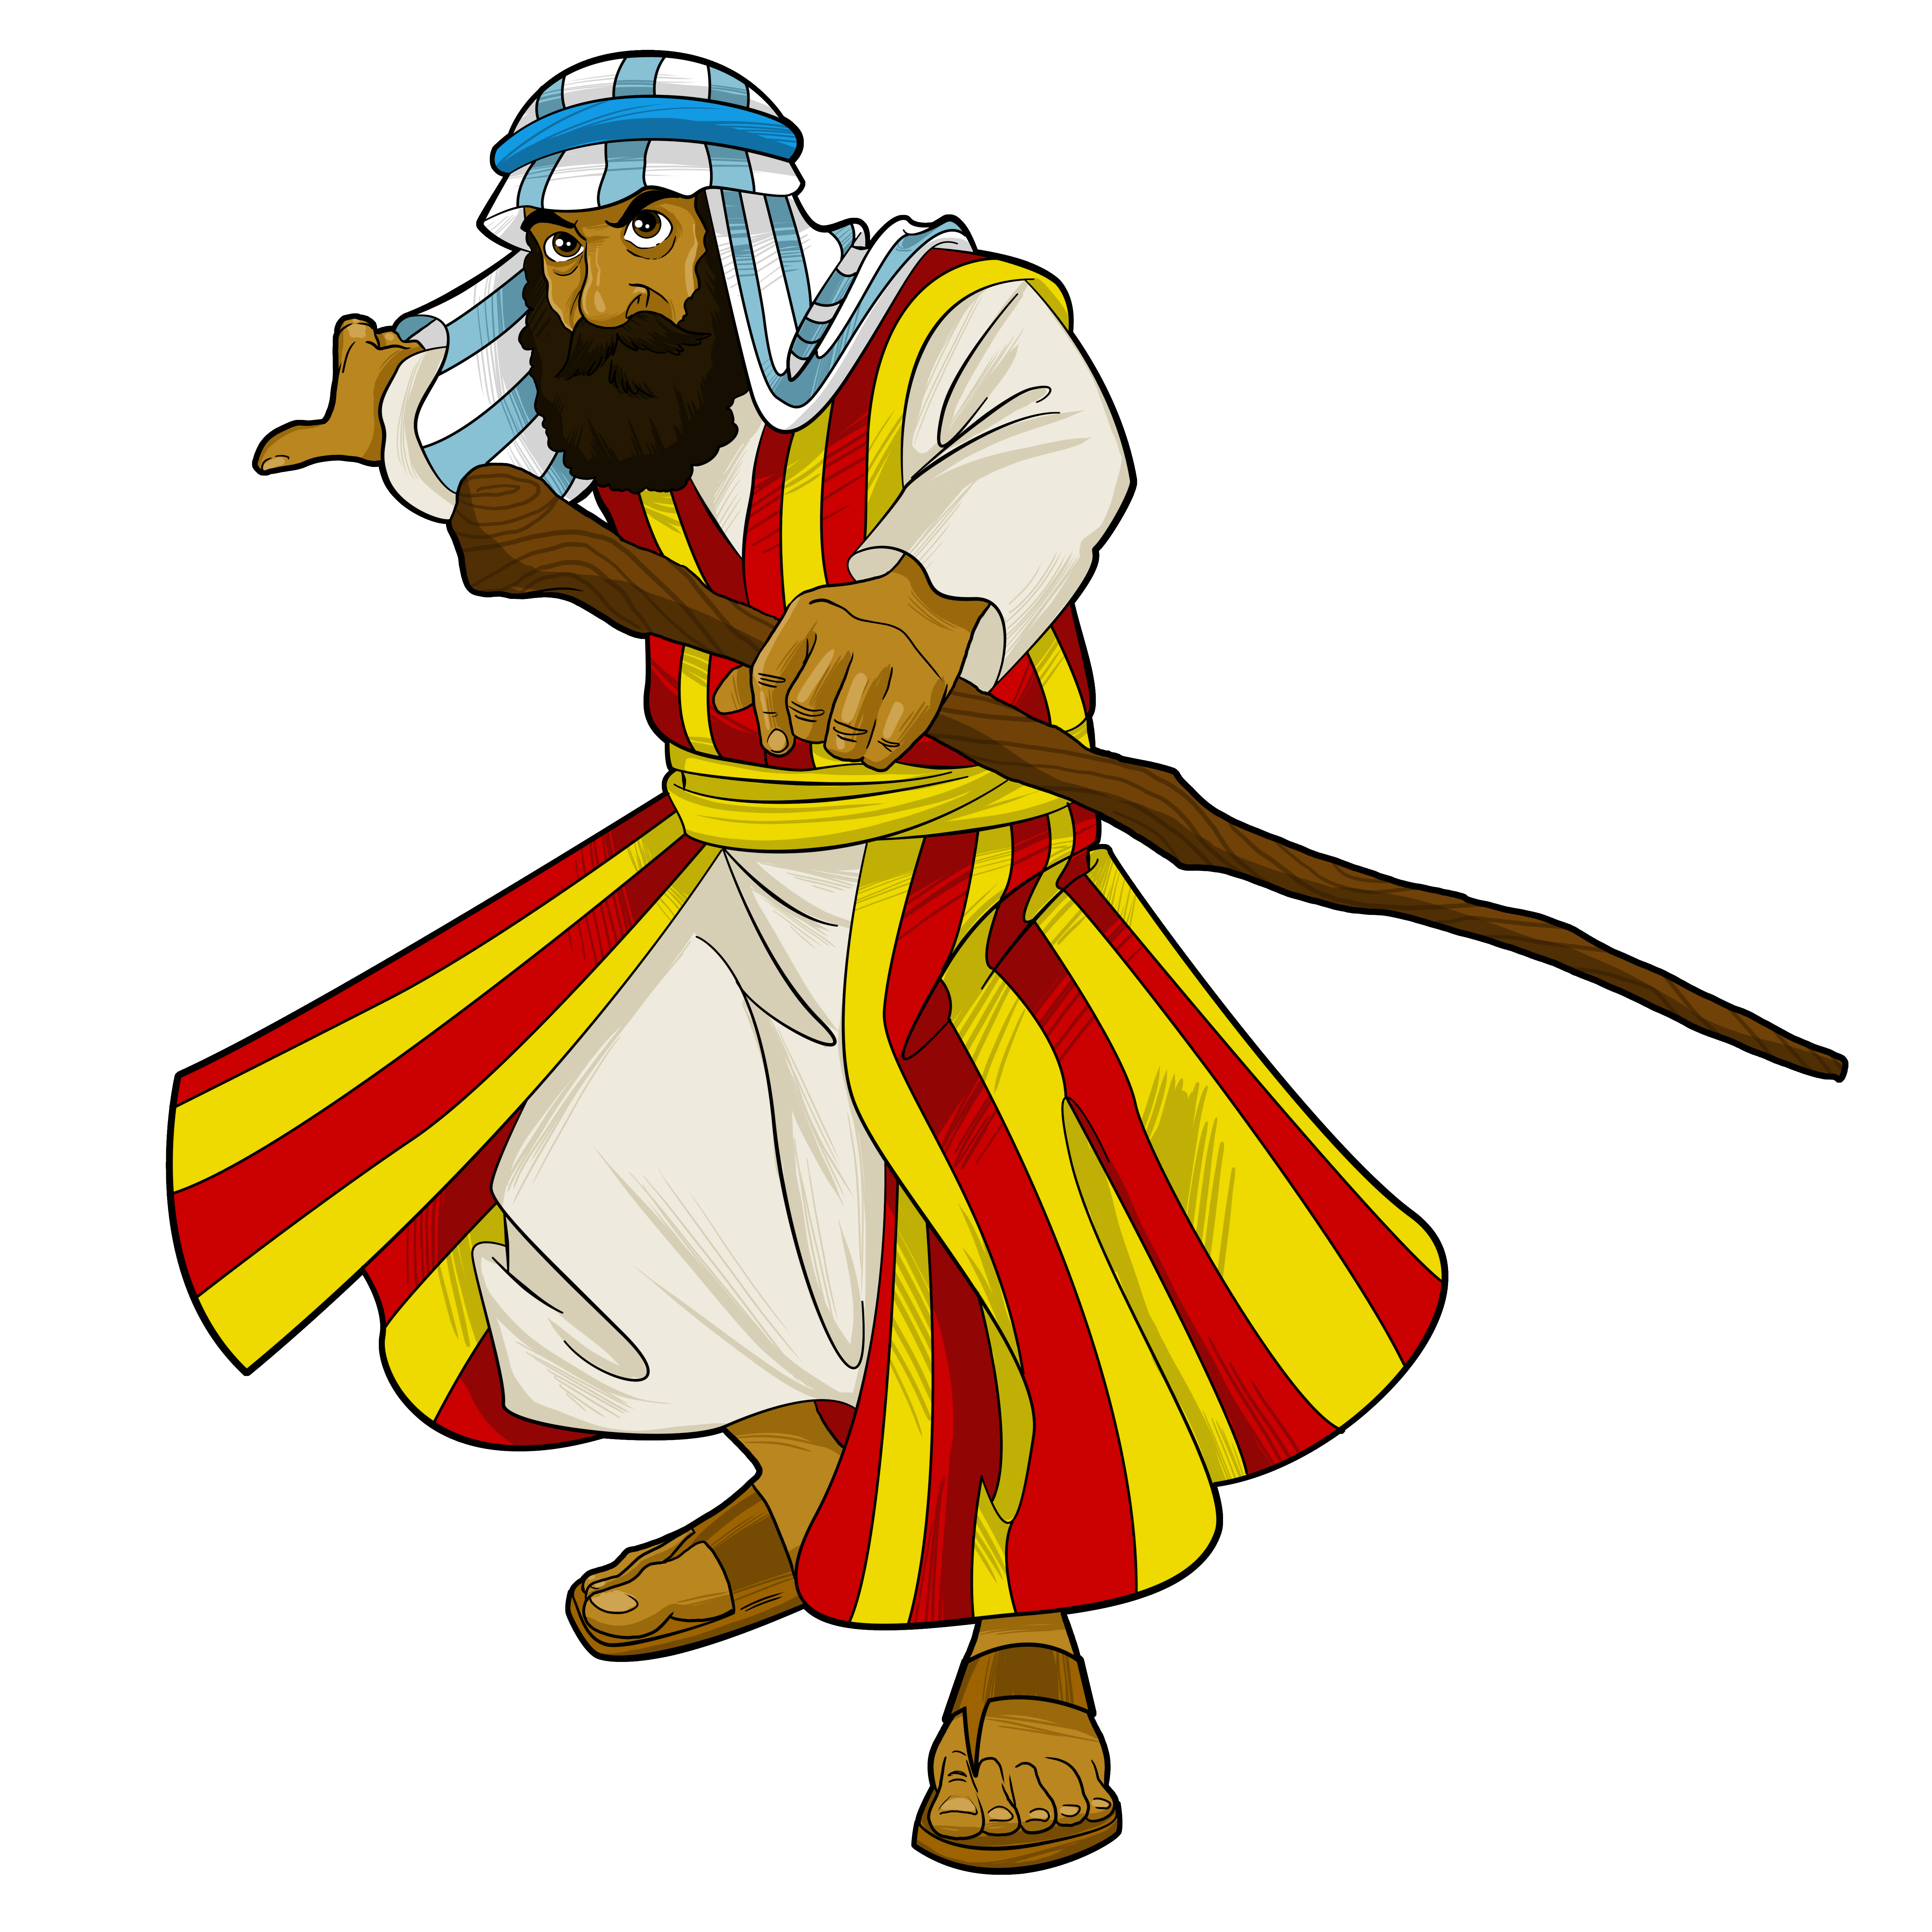 Cliparts free download best. Moses clipart staff moses